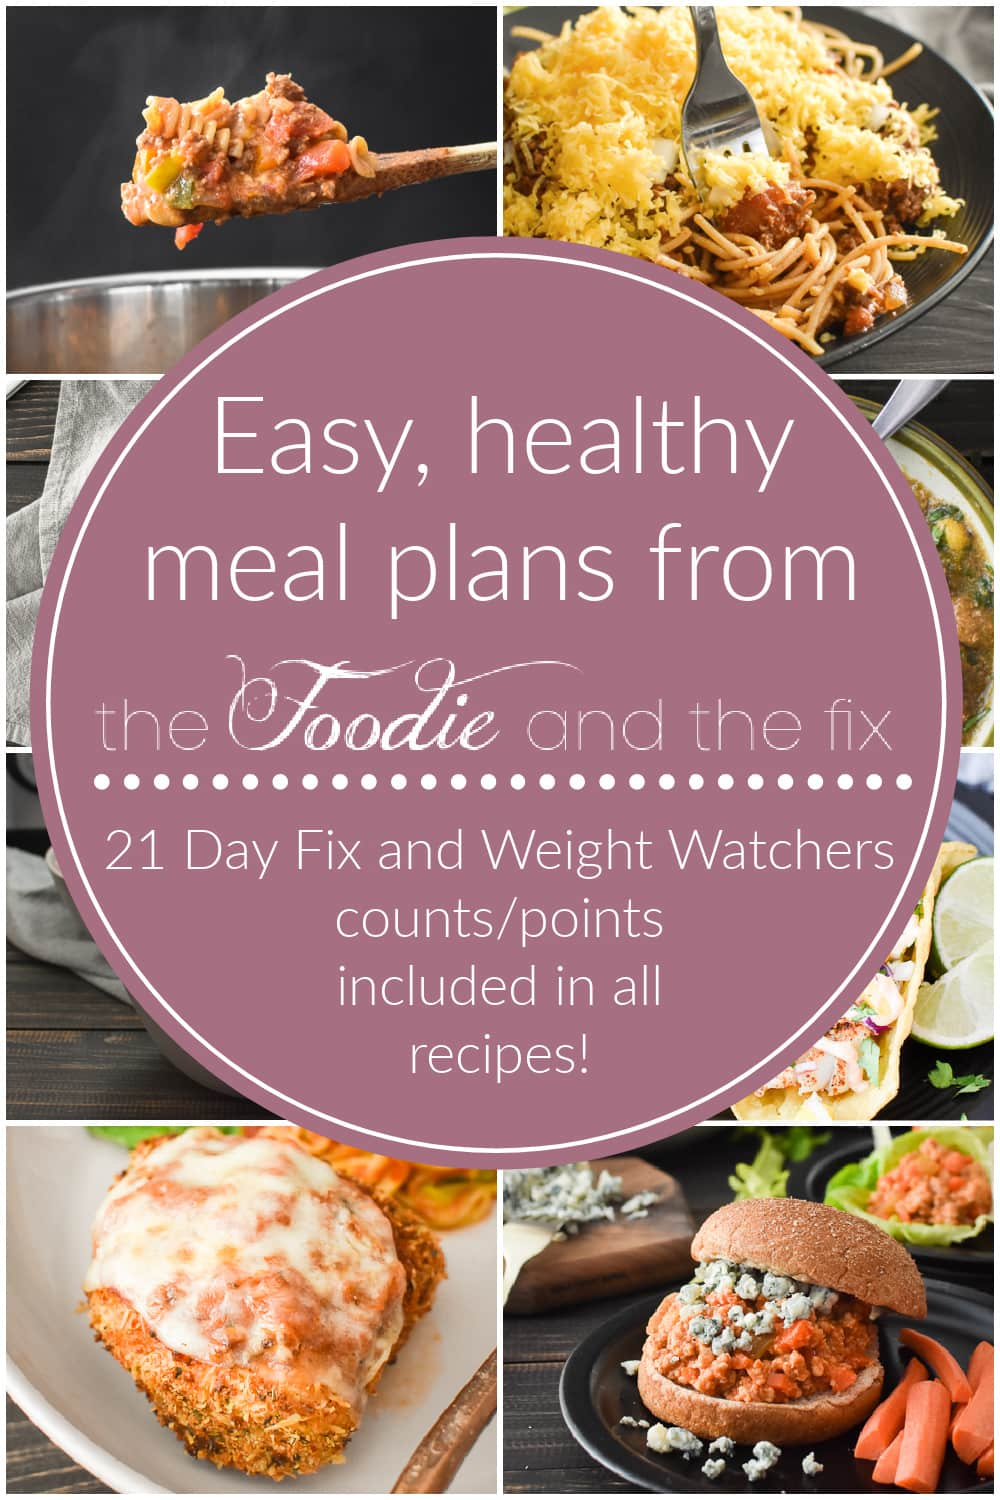 Every healthy meal plan from The Foodie and The Fix! All recipes are 21 Day Fix and Weight Watchers friendly (and include counts/points)! #21dayfix #upf #beachbody #mealplans #mealplan #mealprep #weightwatchers #healthydinner #healthy #ultimateportionfix #kidfriendly